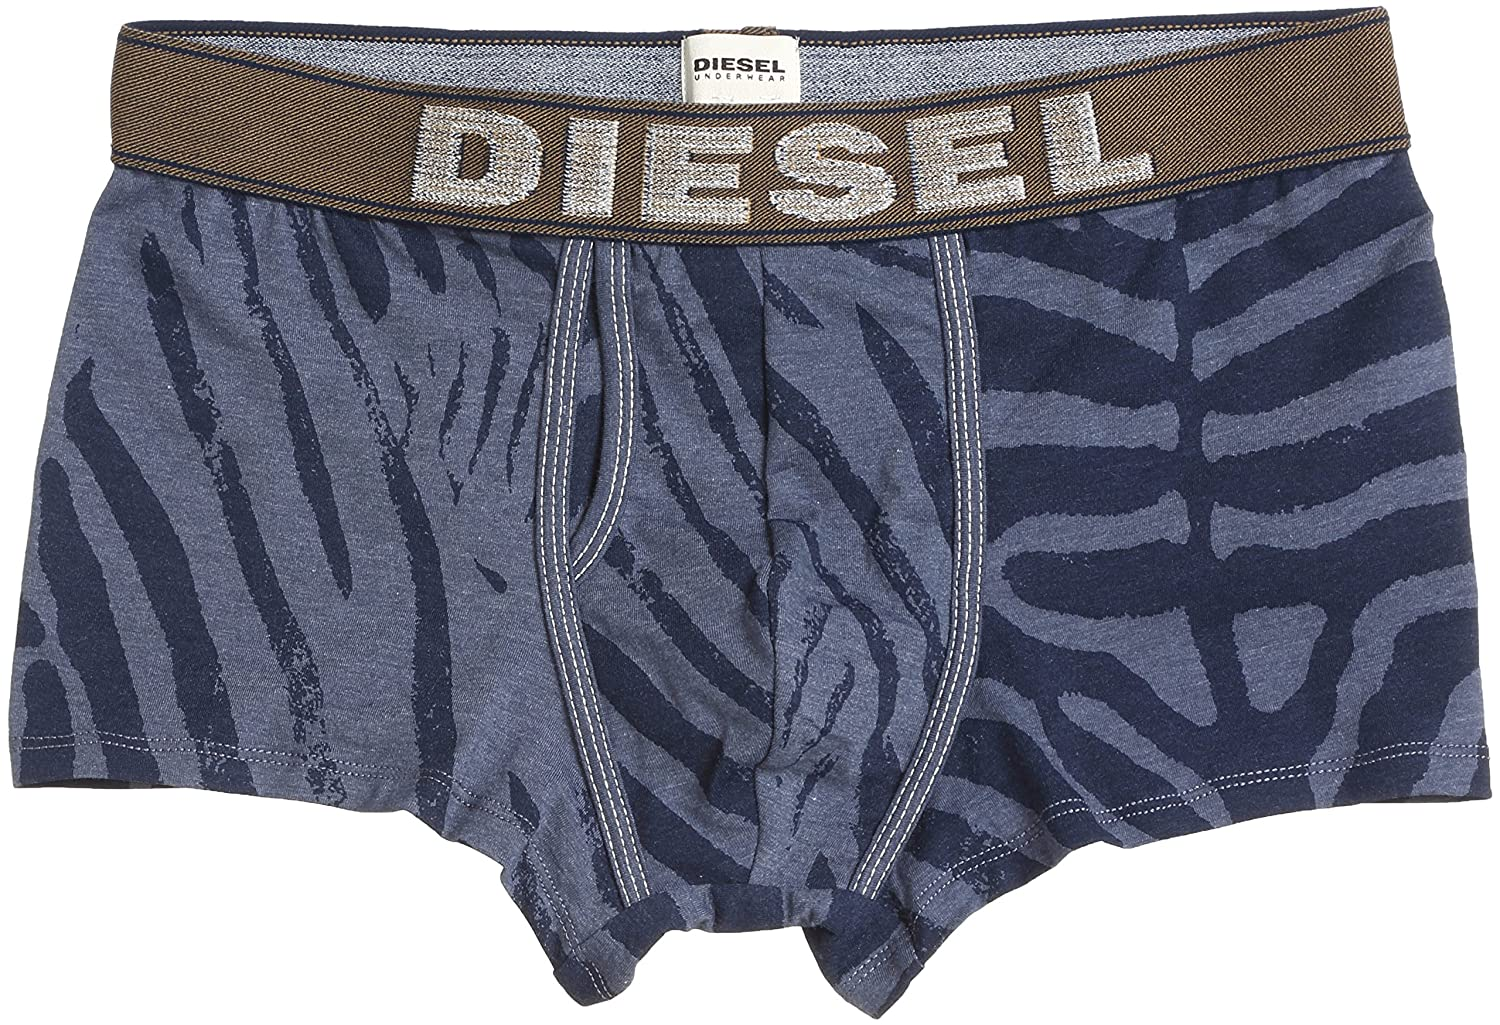 DIESEL men's trunk